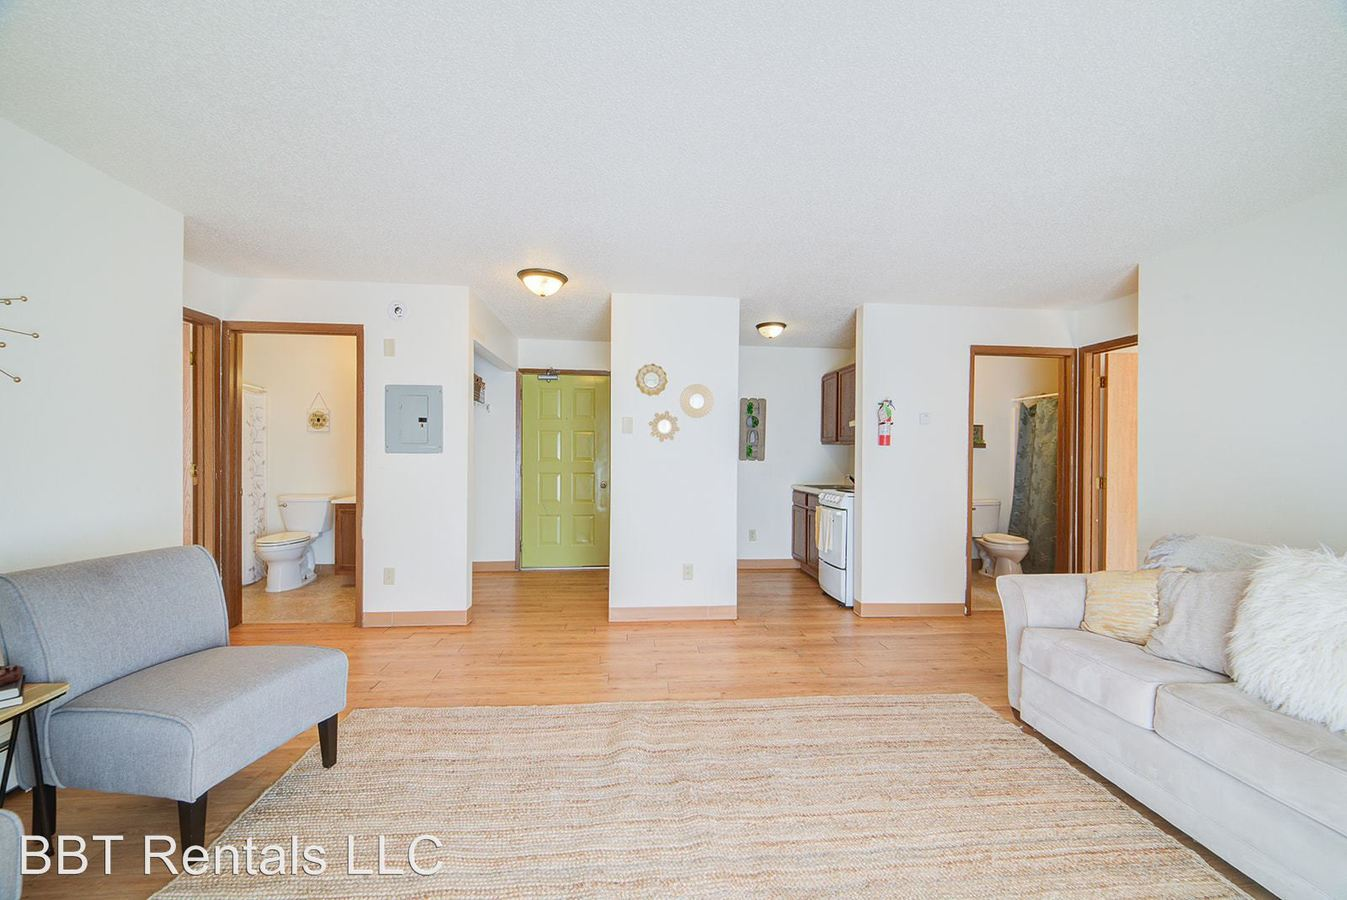 2 Bedrooms 2 Bathrooms Apartment for rent at 40 E Mckinley in Des Moines, IA